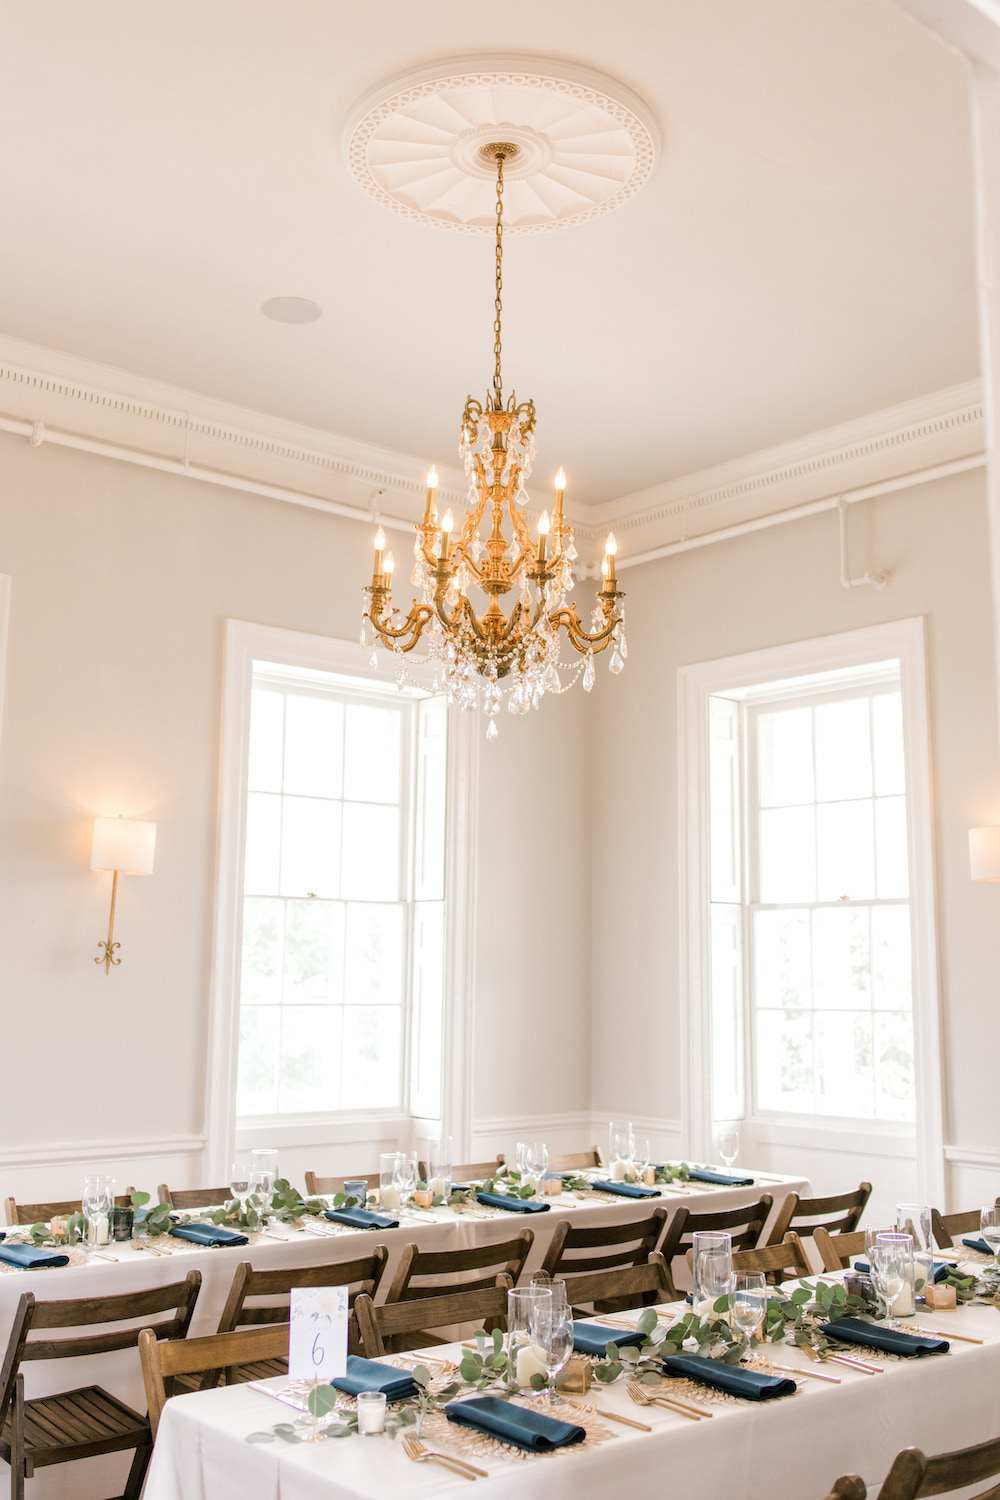 Classic chandelier over simple table settings